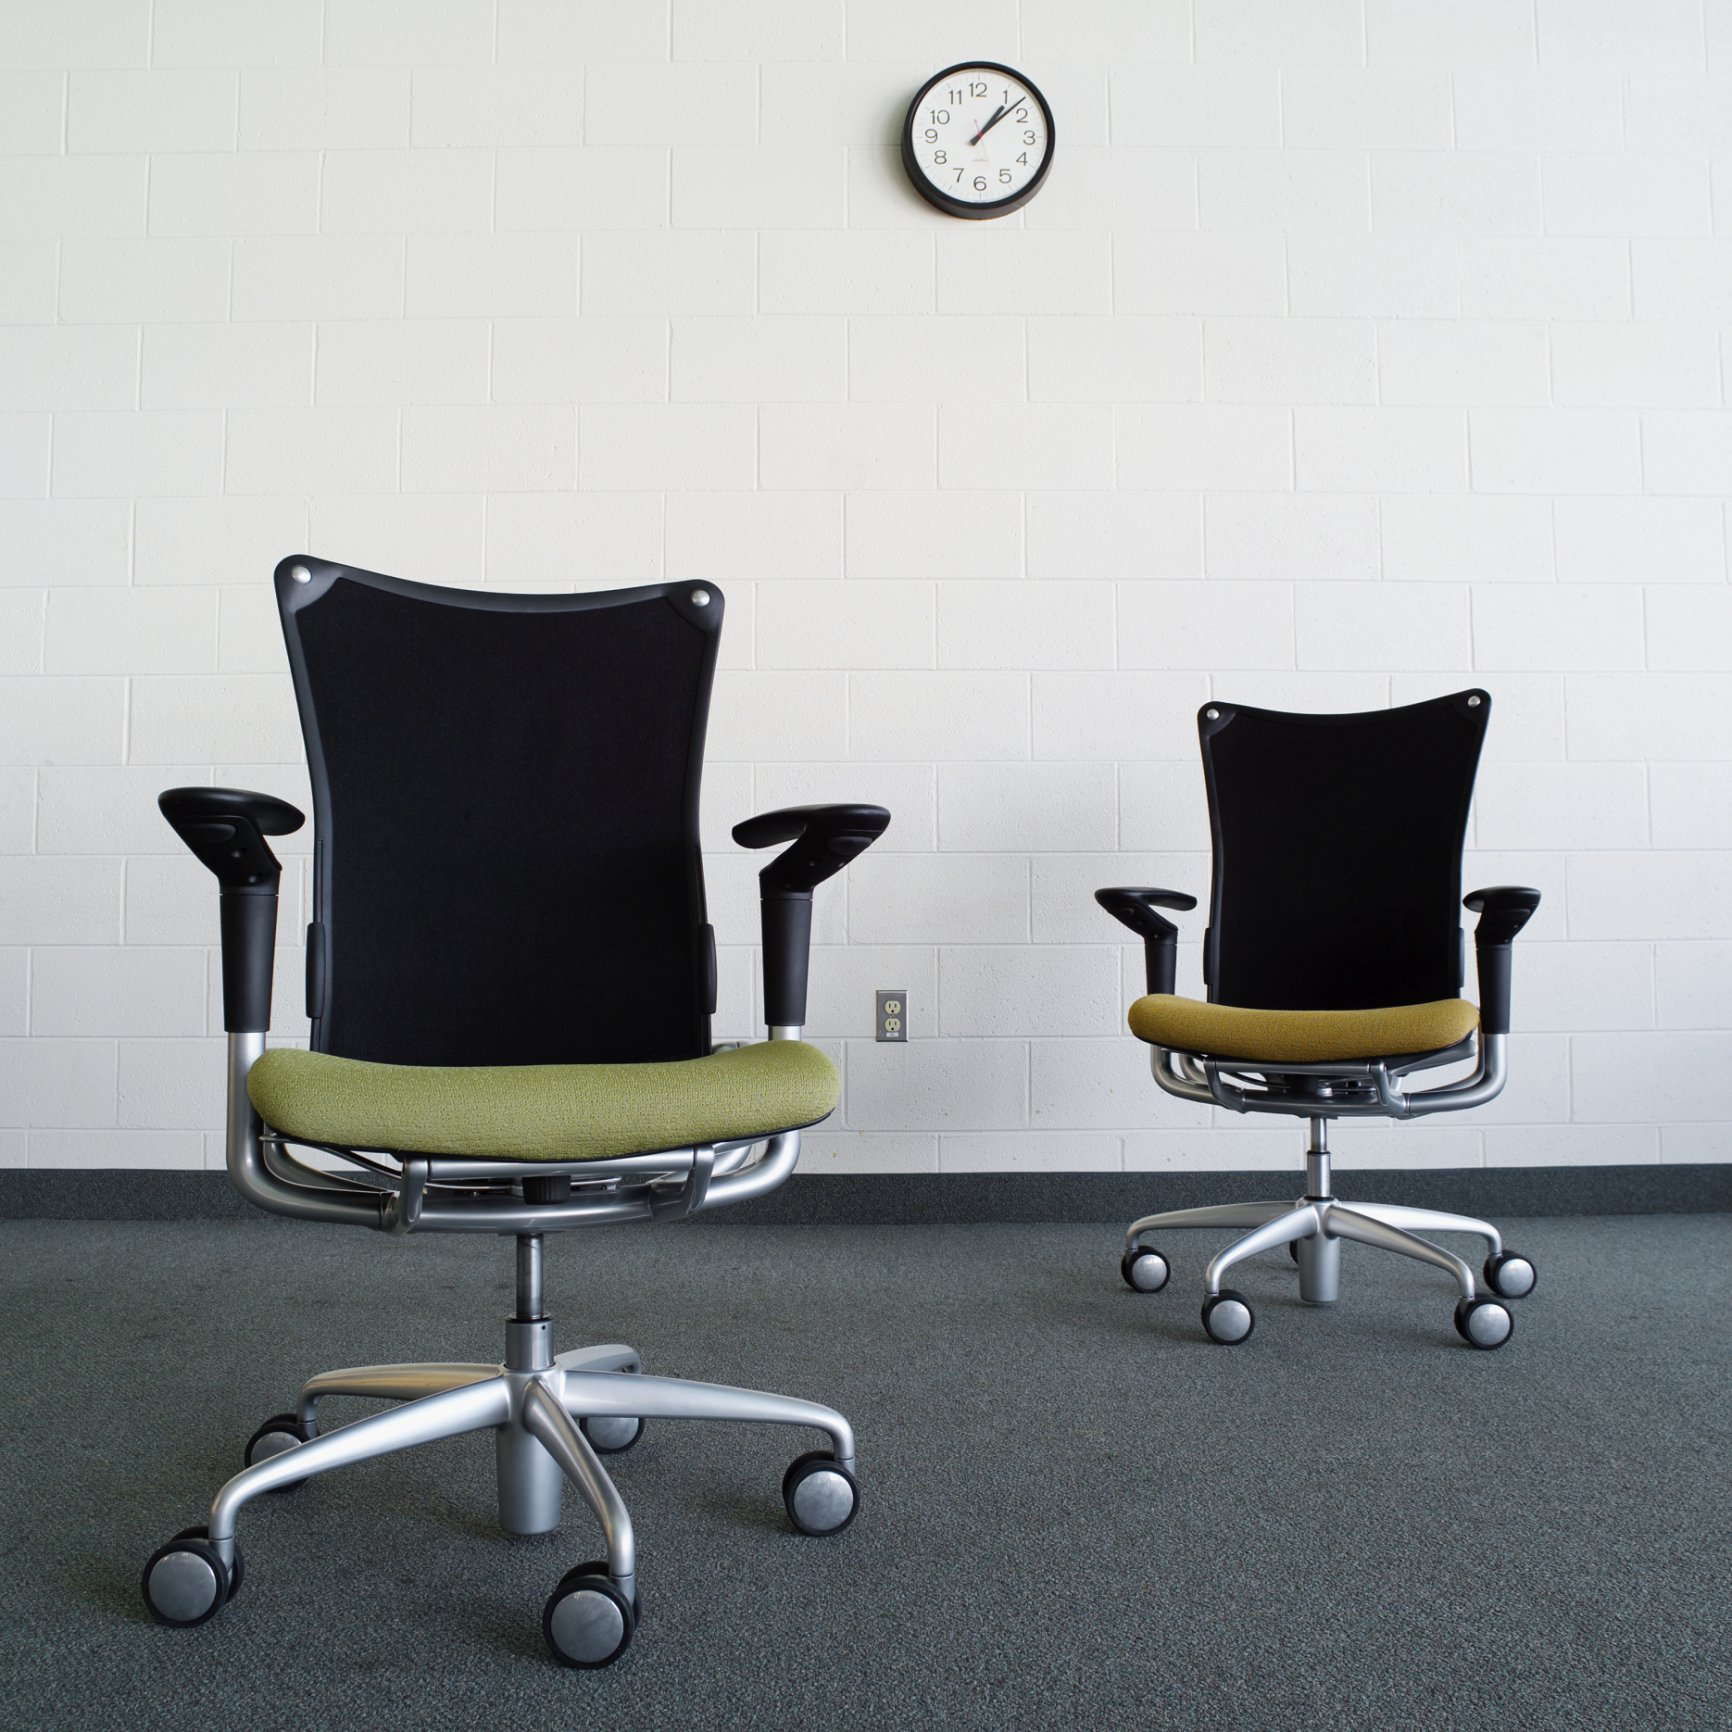 You Can Lose Fat by Sitting Less at Work